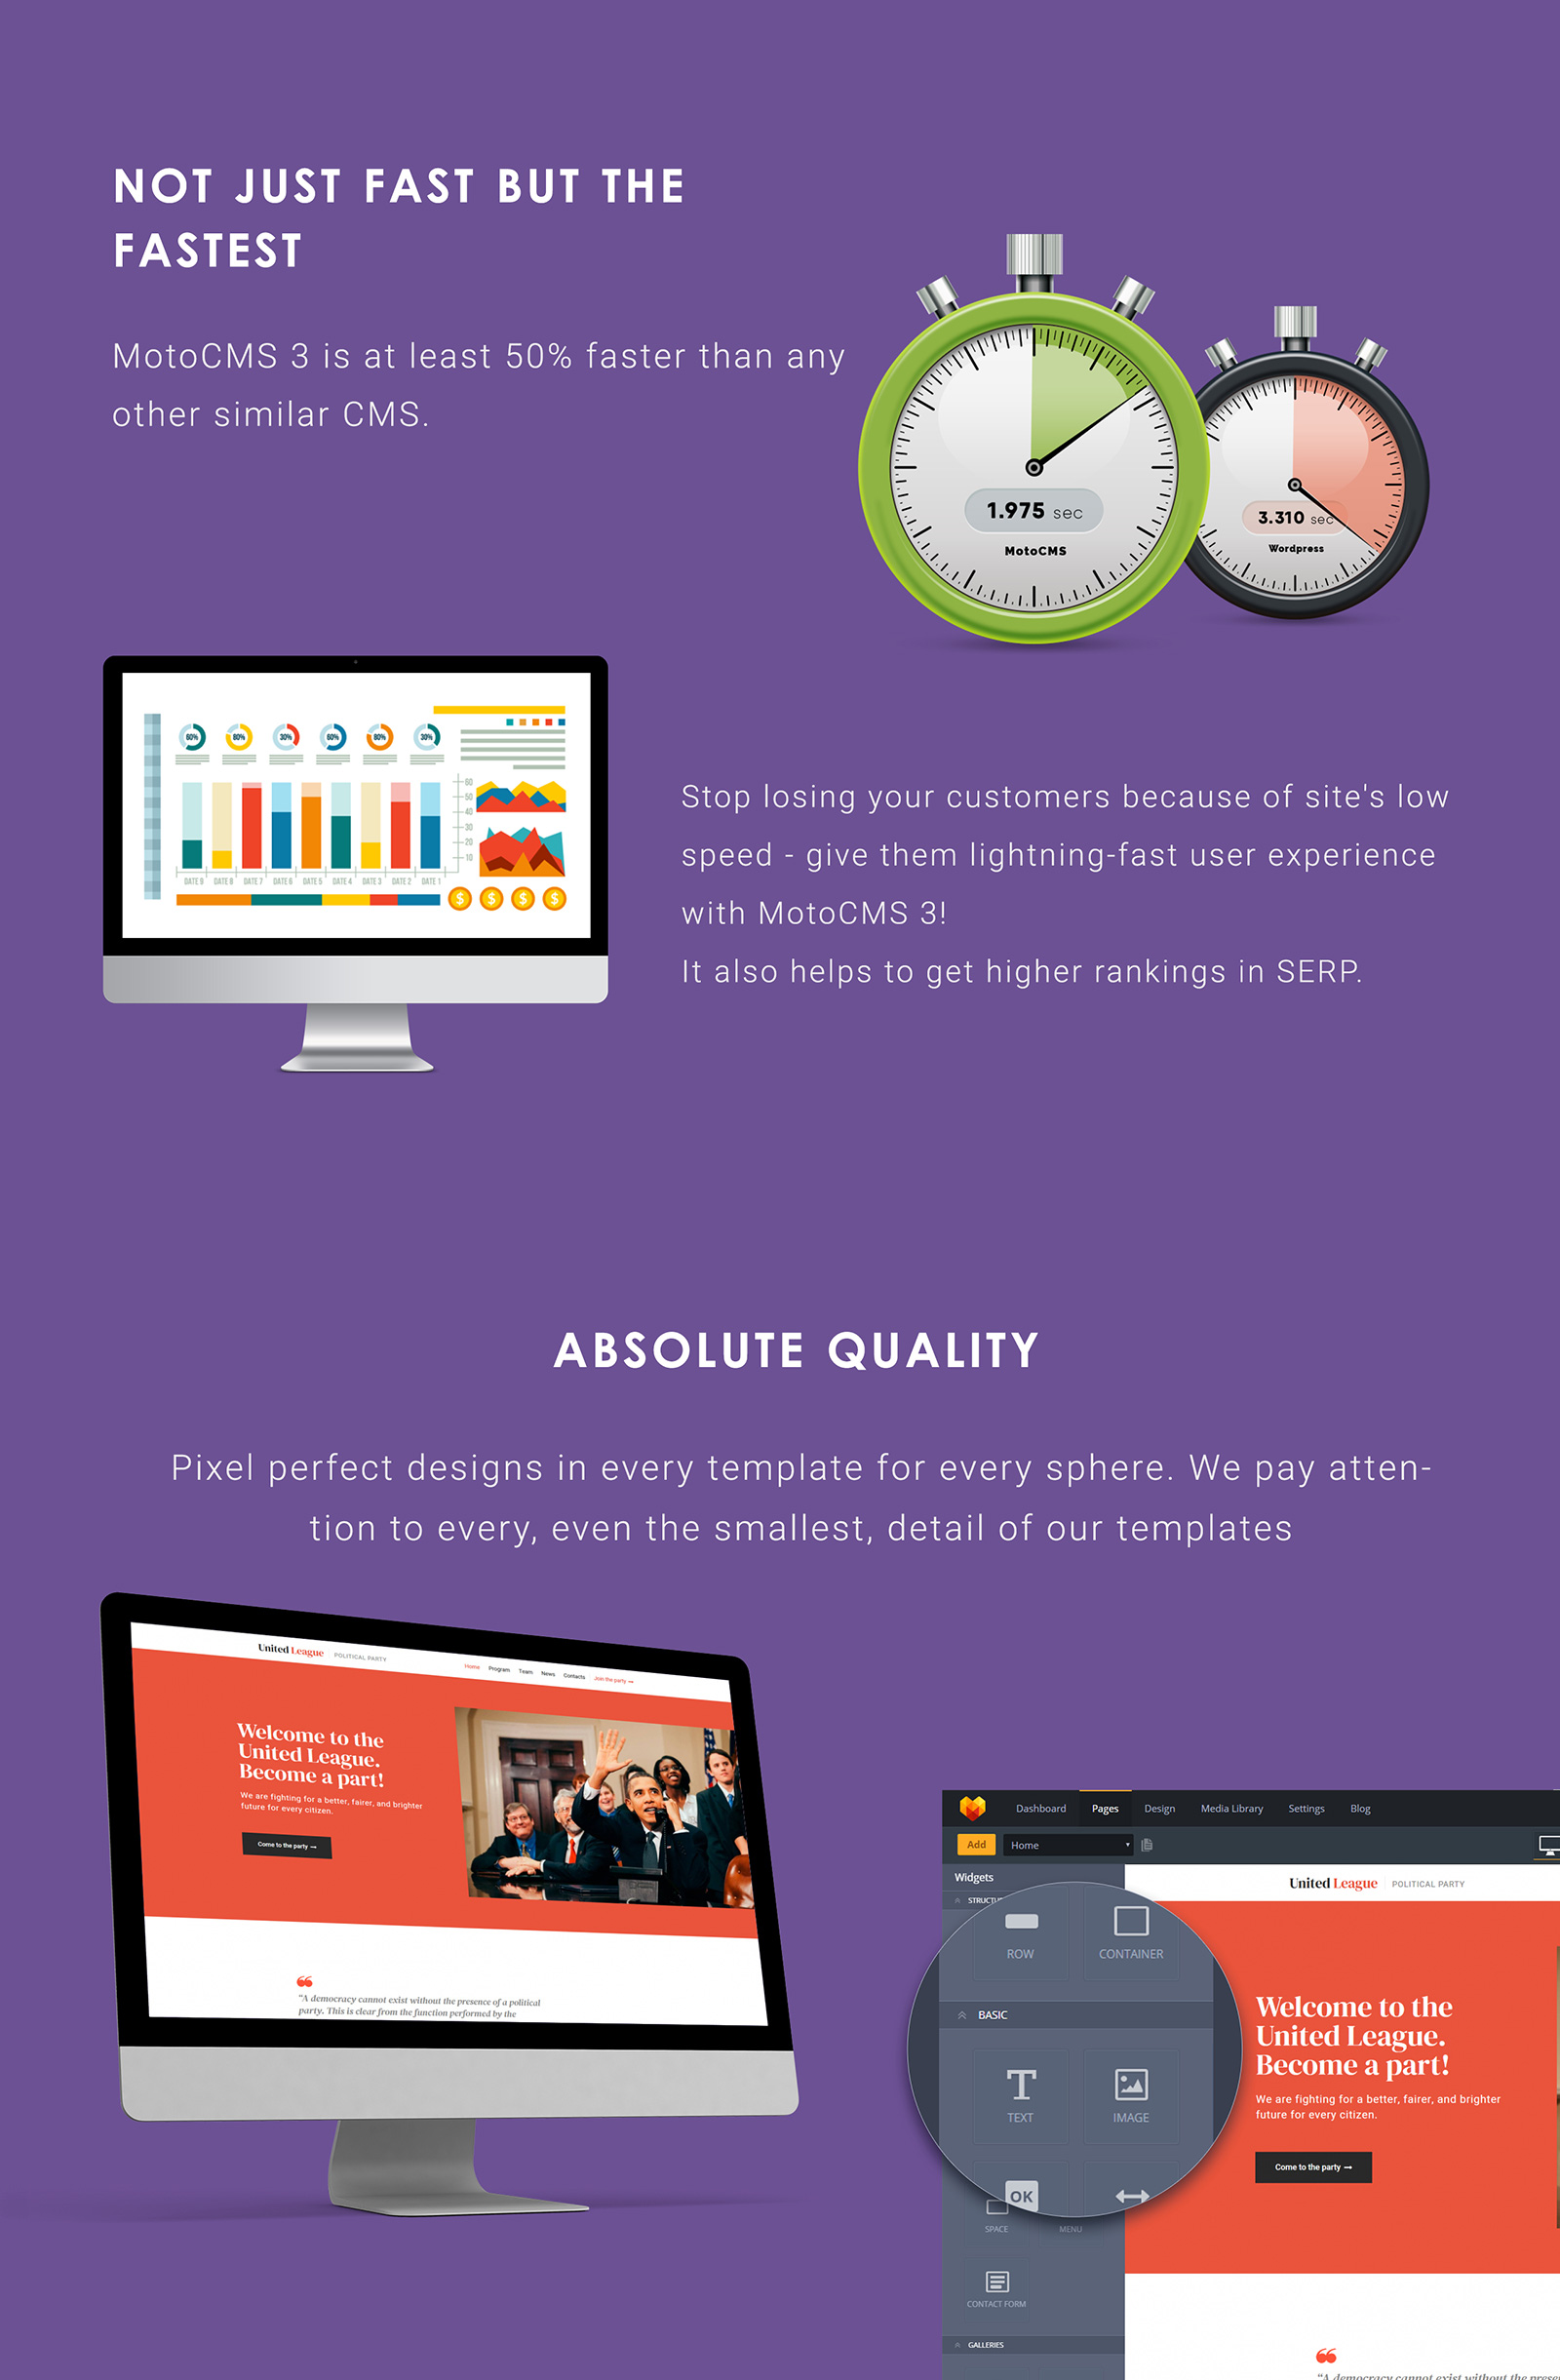 United League - Reliable Political Campaign Moto CMS 3 Template